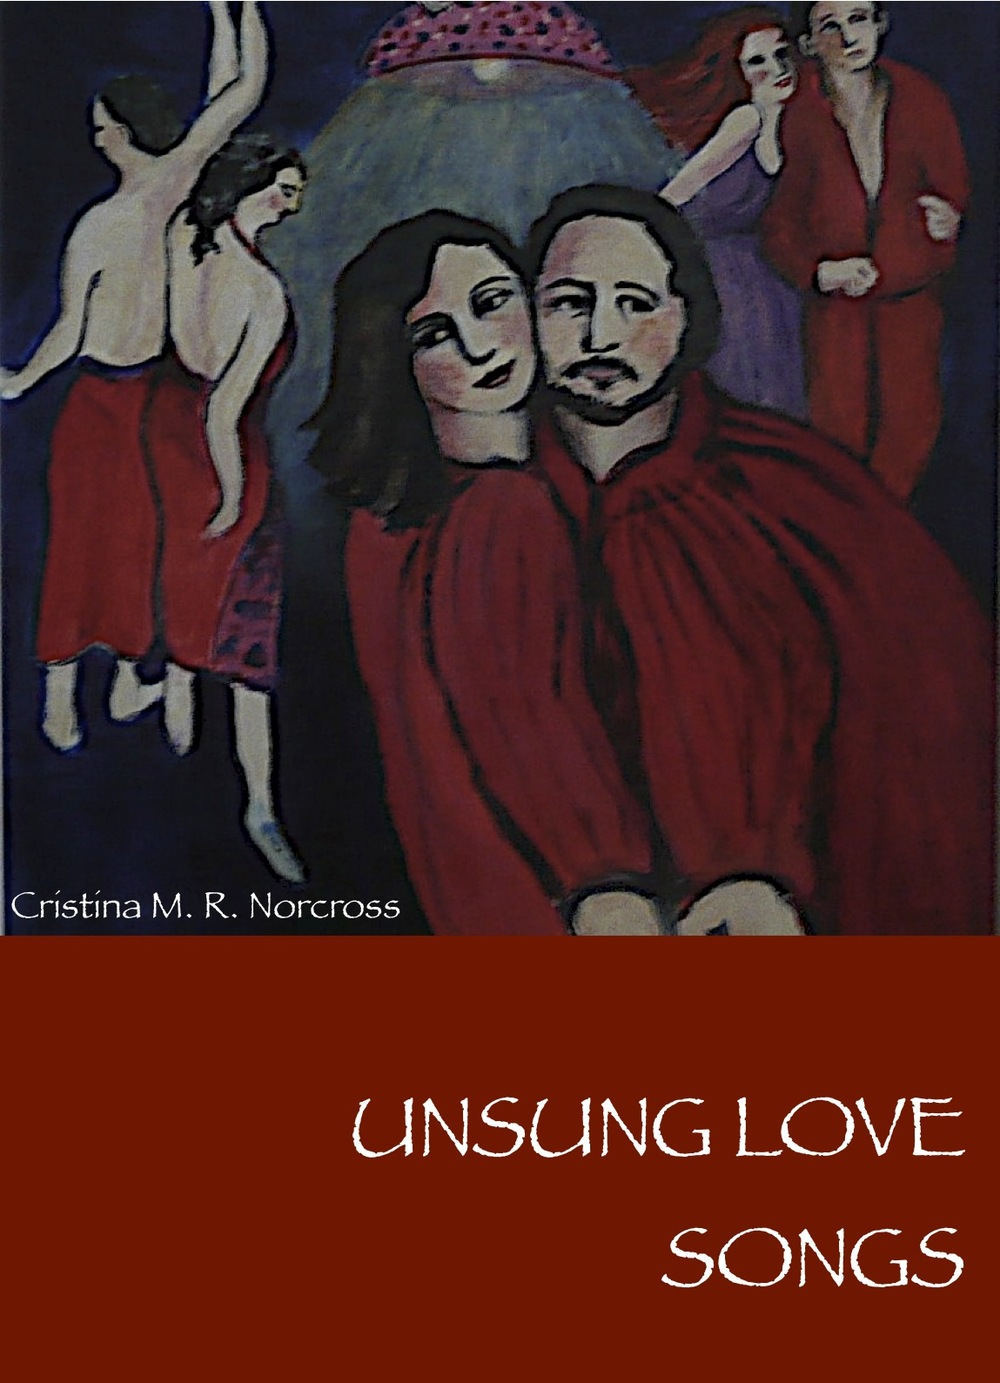 Unsung Book Cover Option1 vJN FINAL.jpg